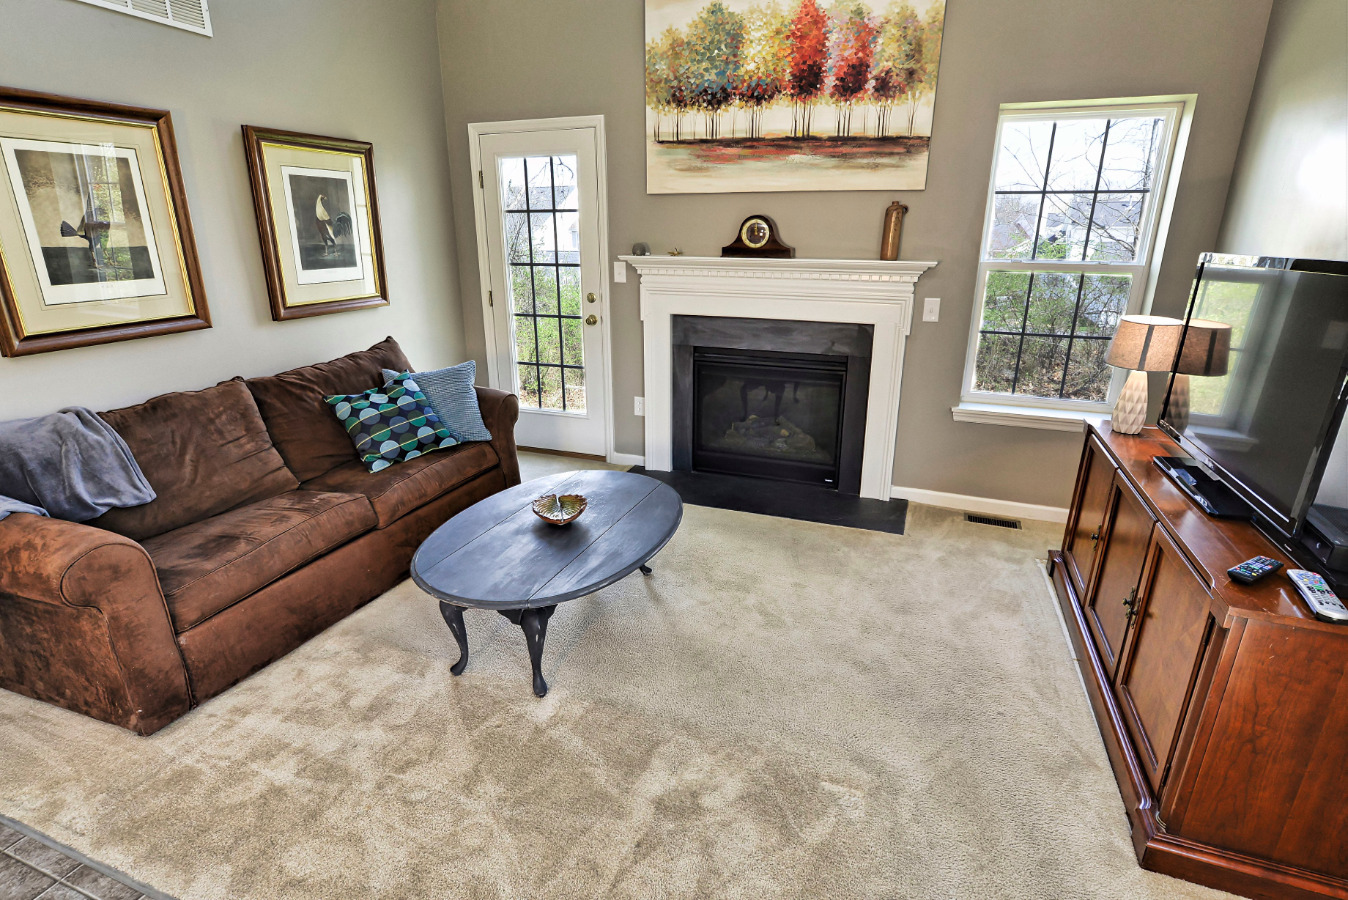 The living room allows for plenty of light to come in. The gas fireplace makes t